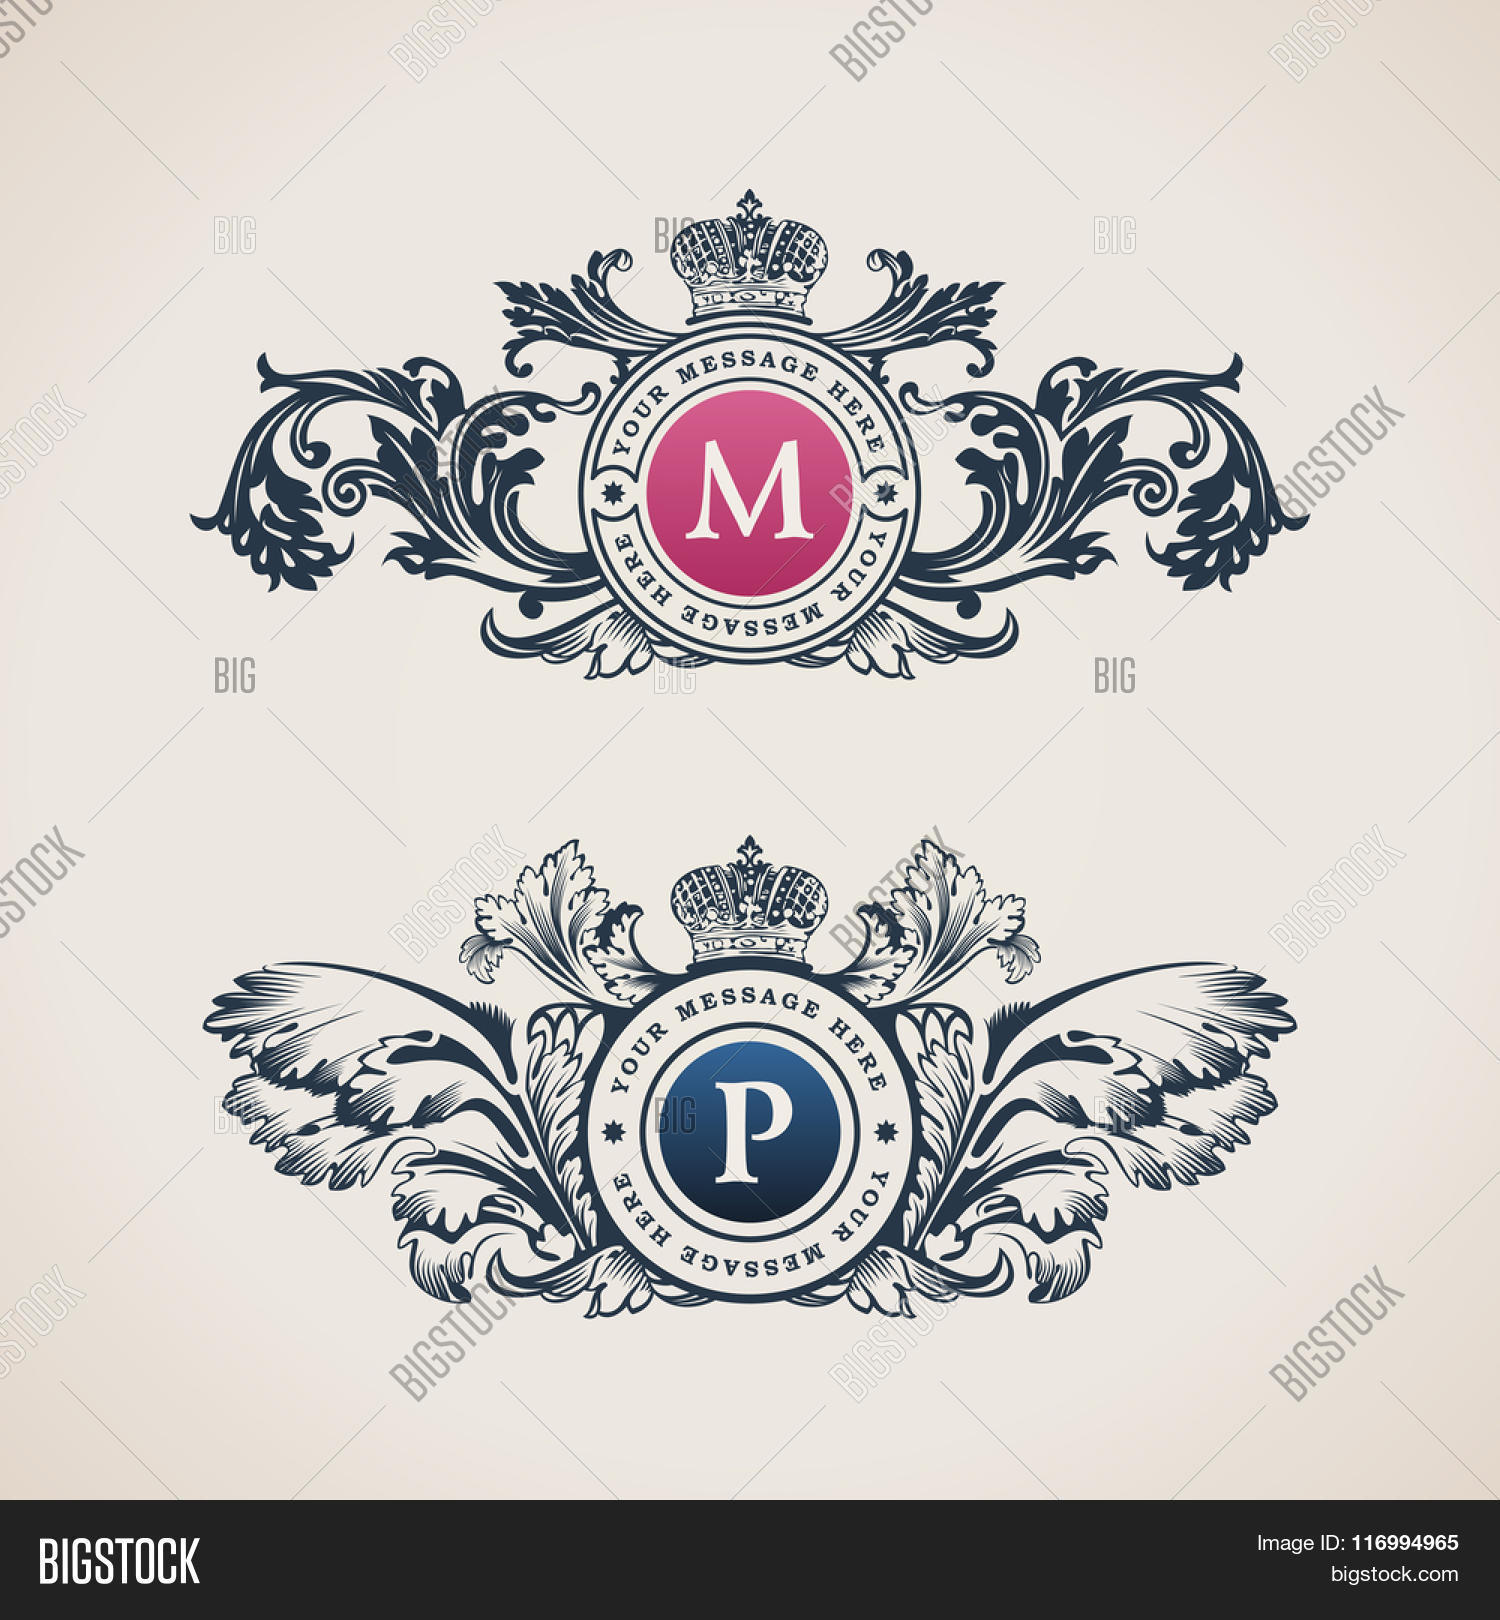 Vintage decorative elements vector photo bigstock vintage decorative elements flourishes calligraphic ornament letter m p elegant emblem template monogram pronofoot35fo Images